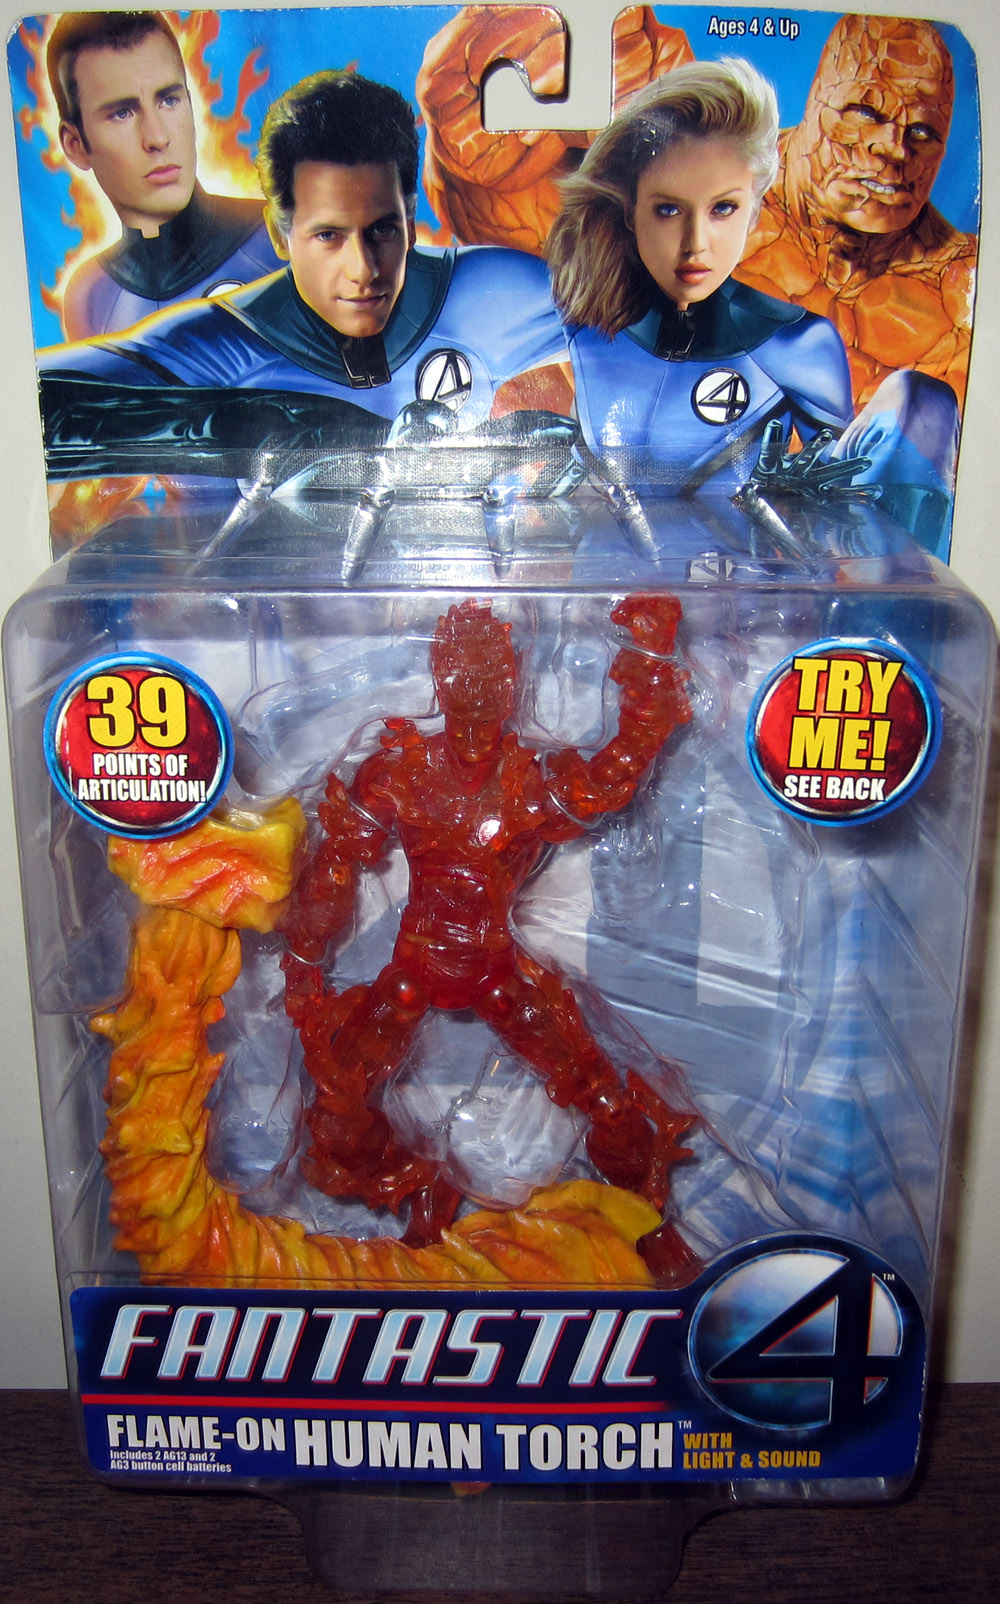 Flame-On Human Torch (Fantastic 4 Movie)